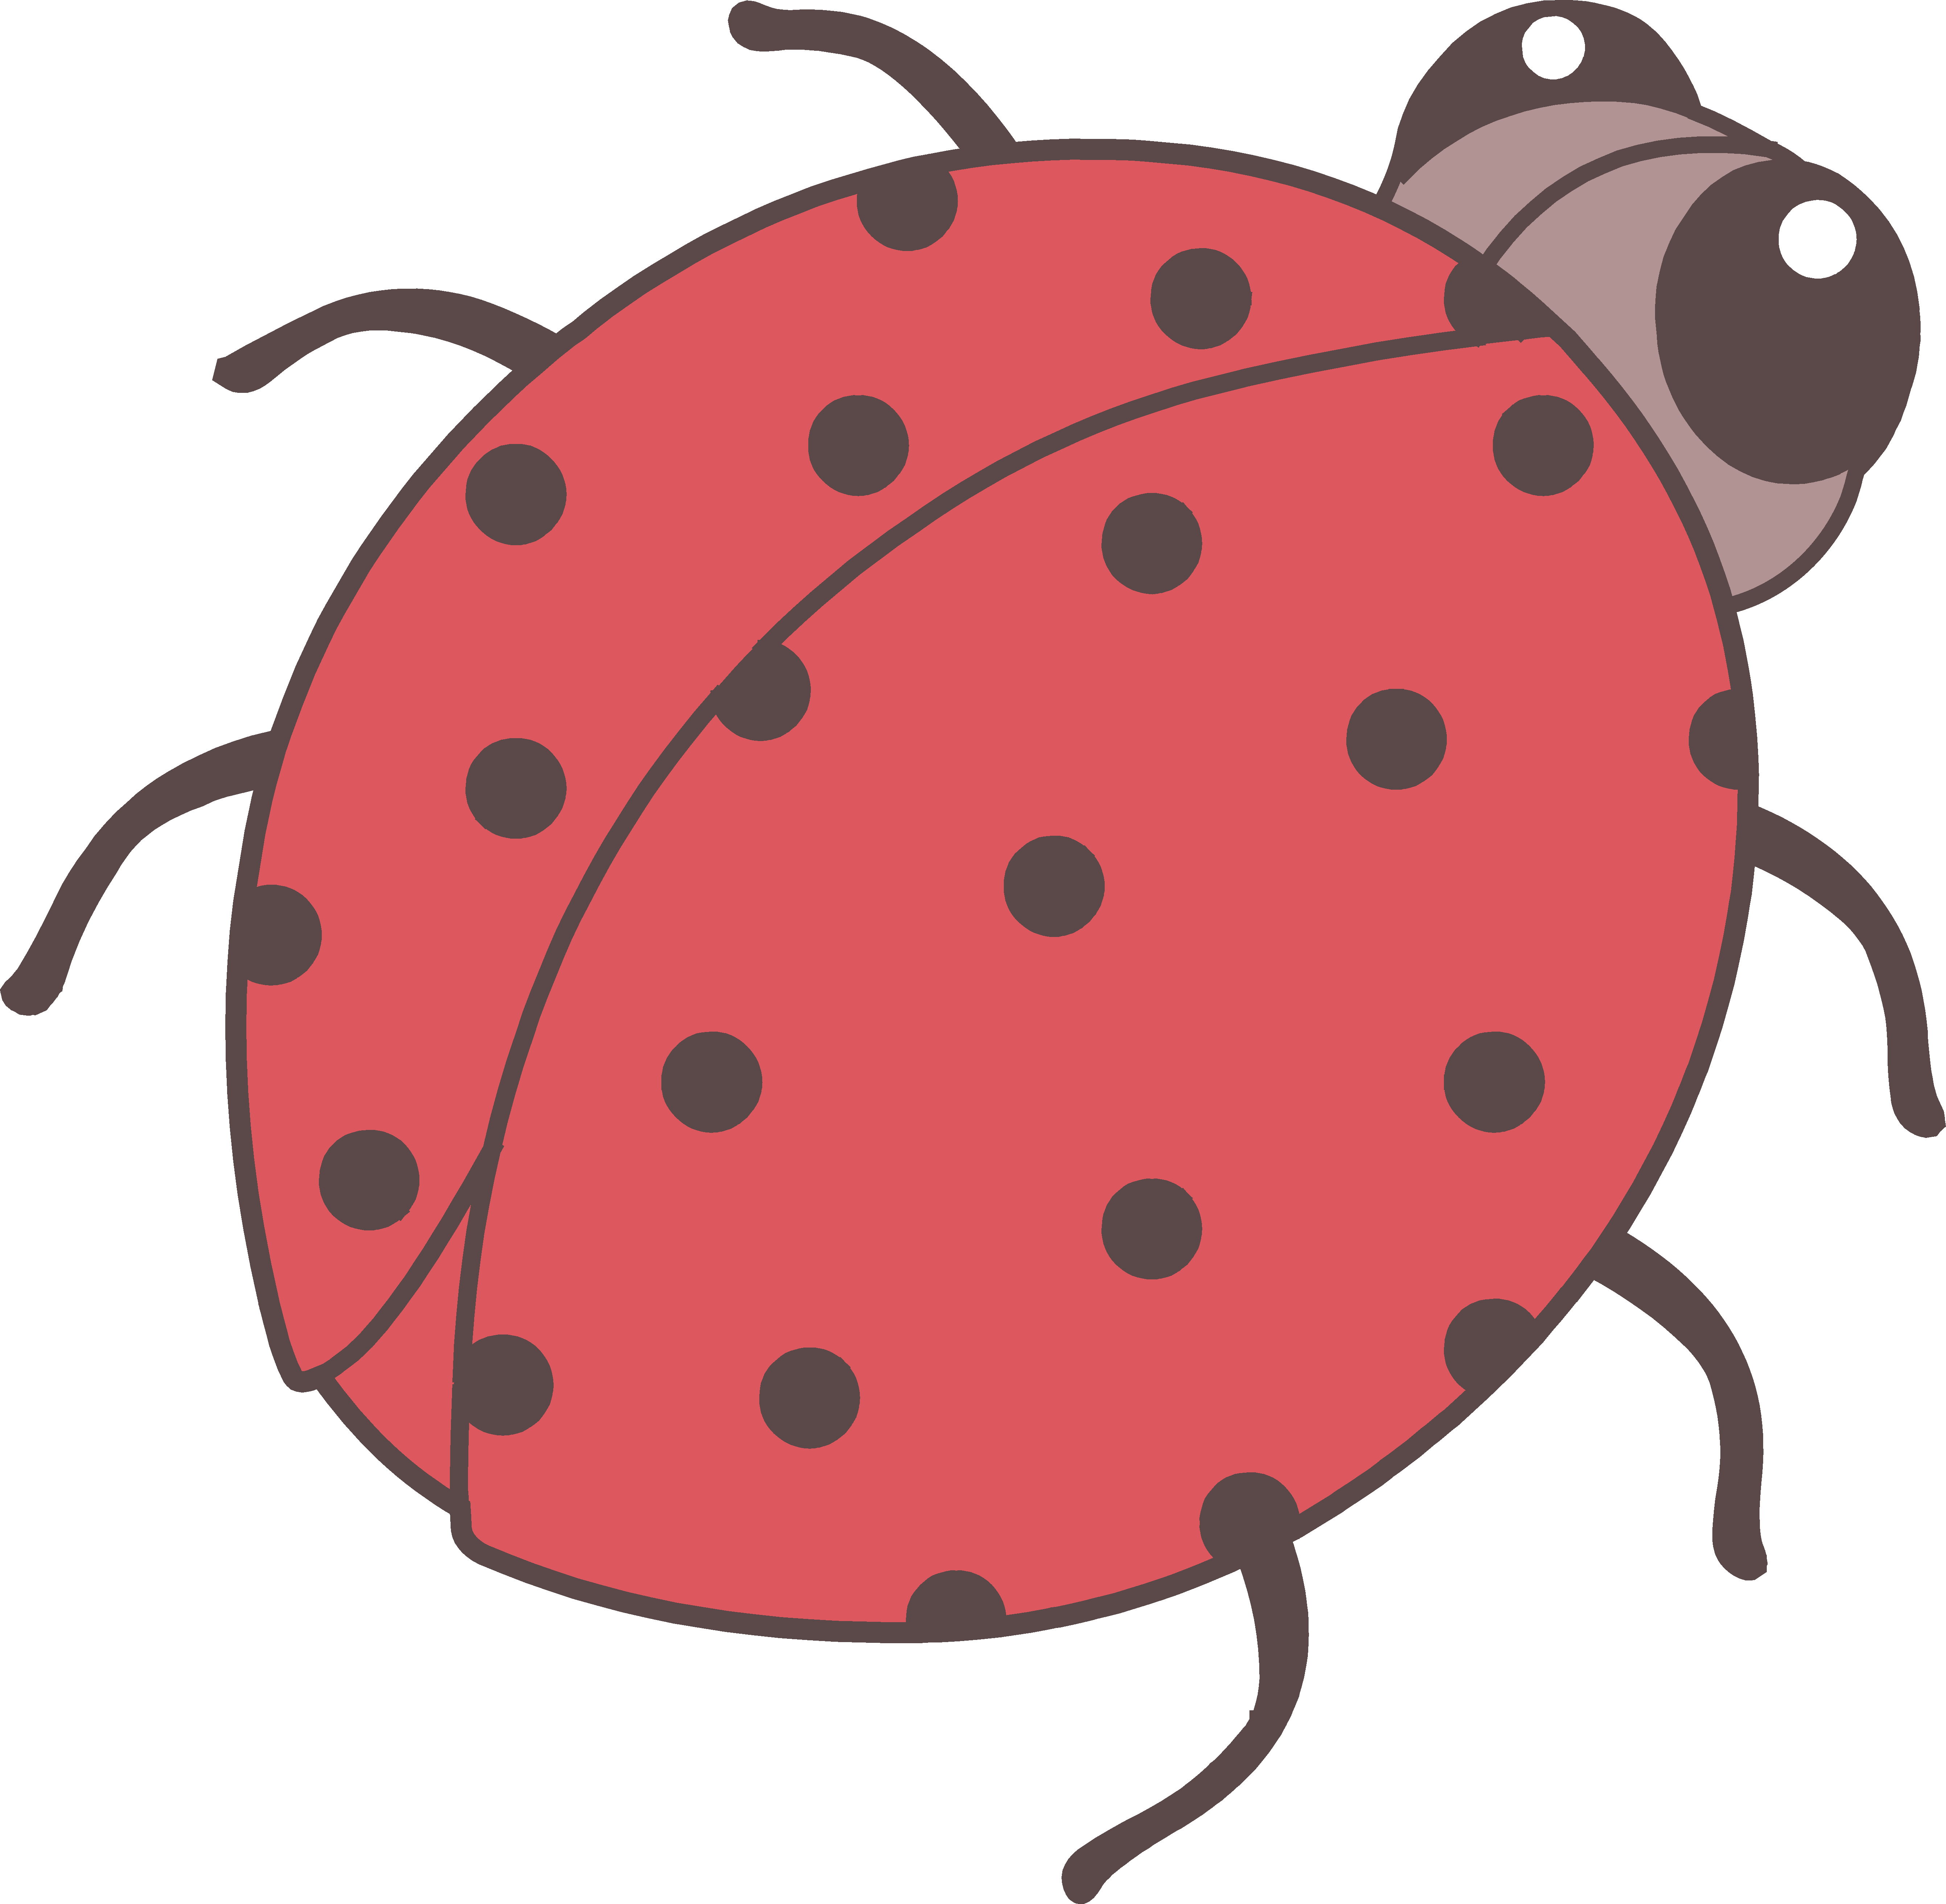 cute bug drawing at getdrawings com free for personal use cute bug rh getdrawings com